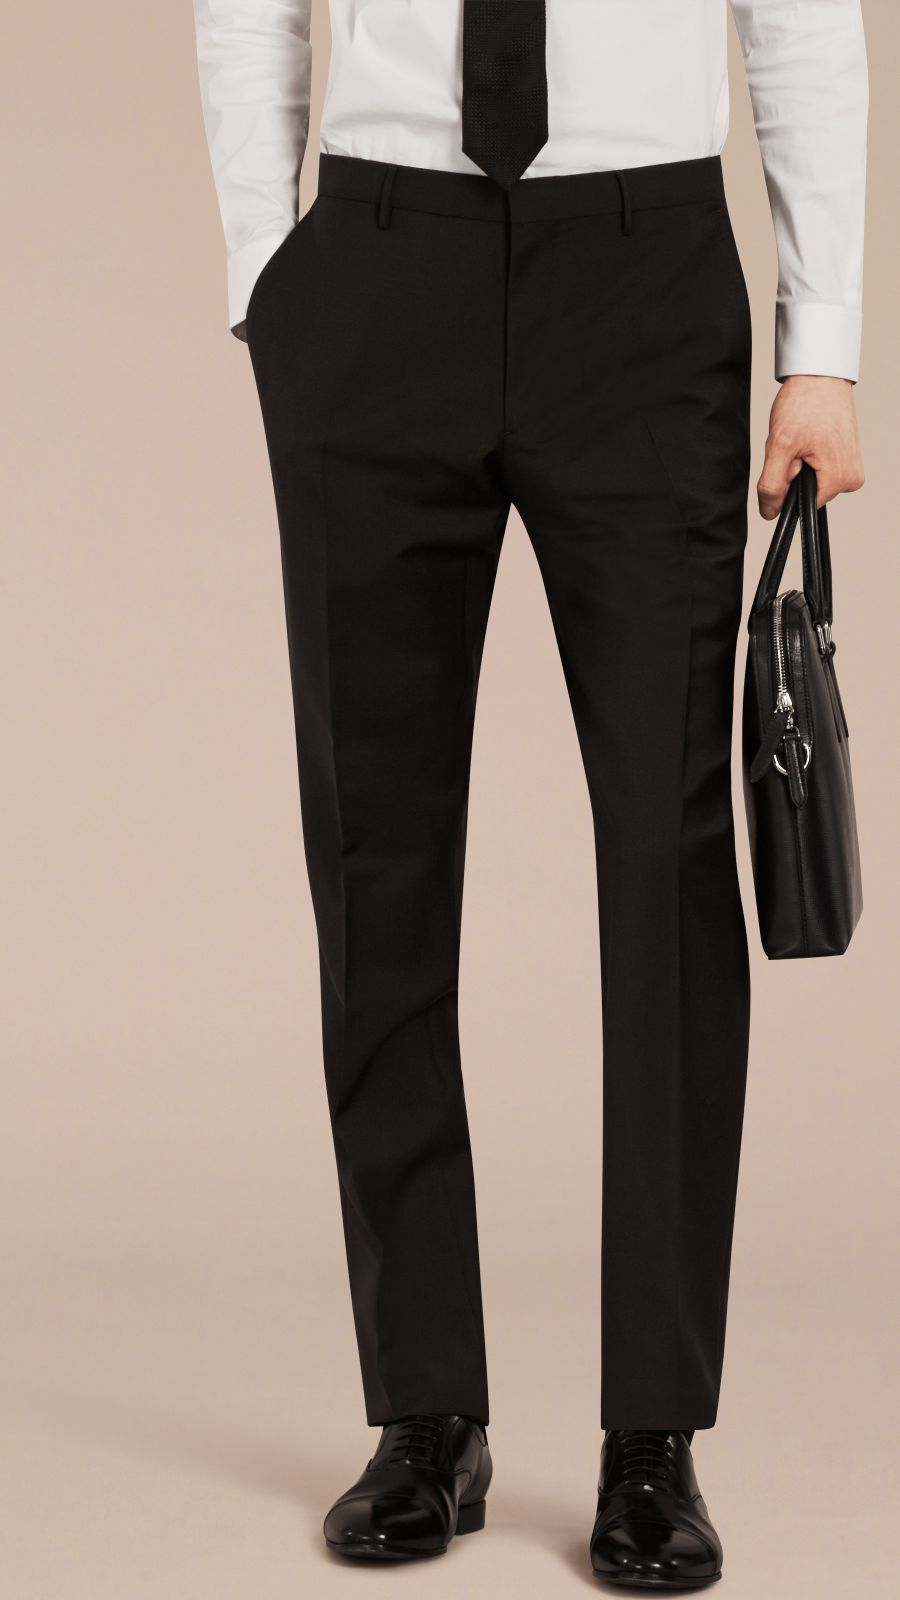 Black Slim Fit Wool Mohair Trousers Black - Image 3